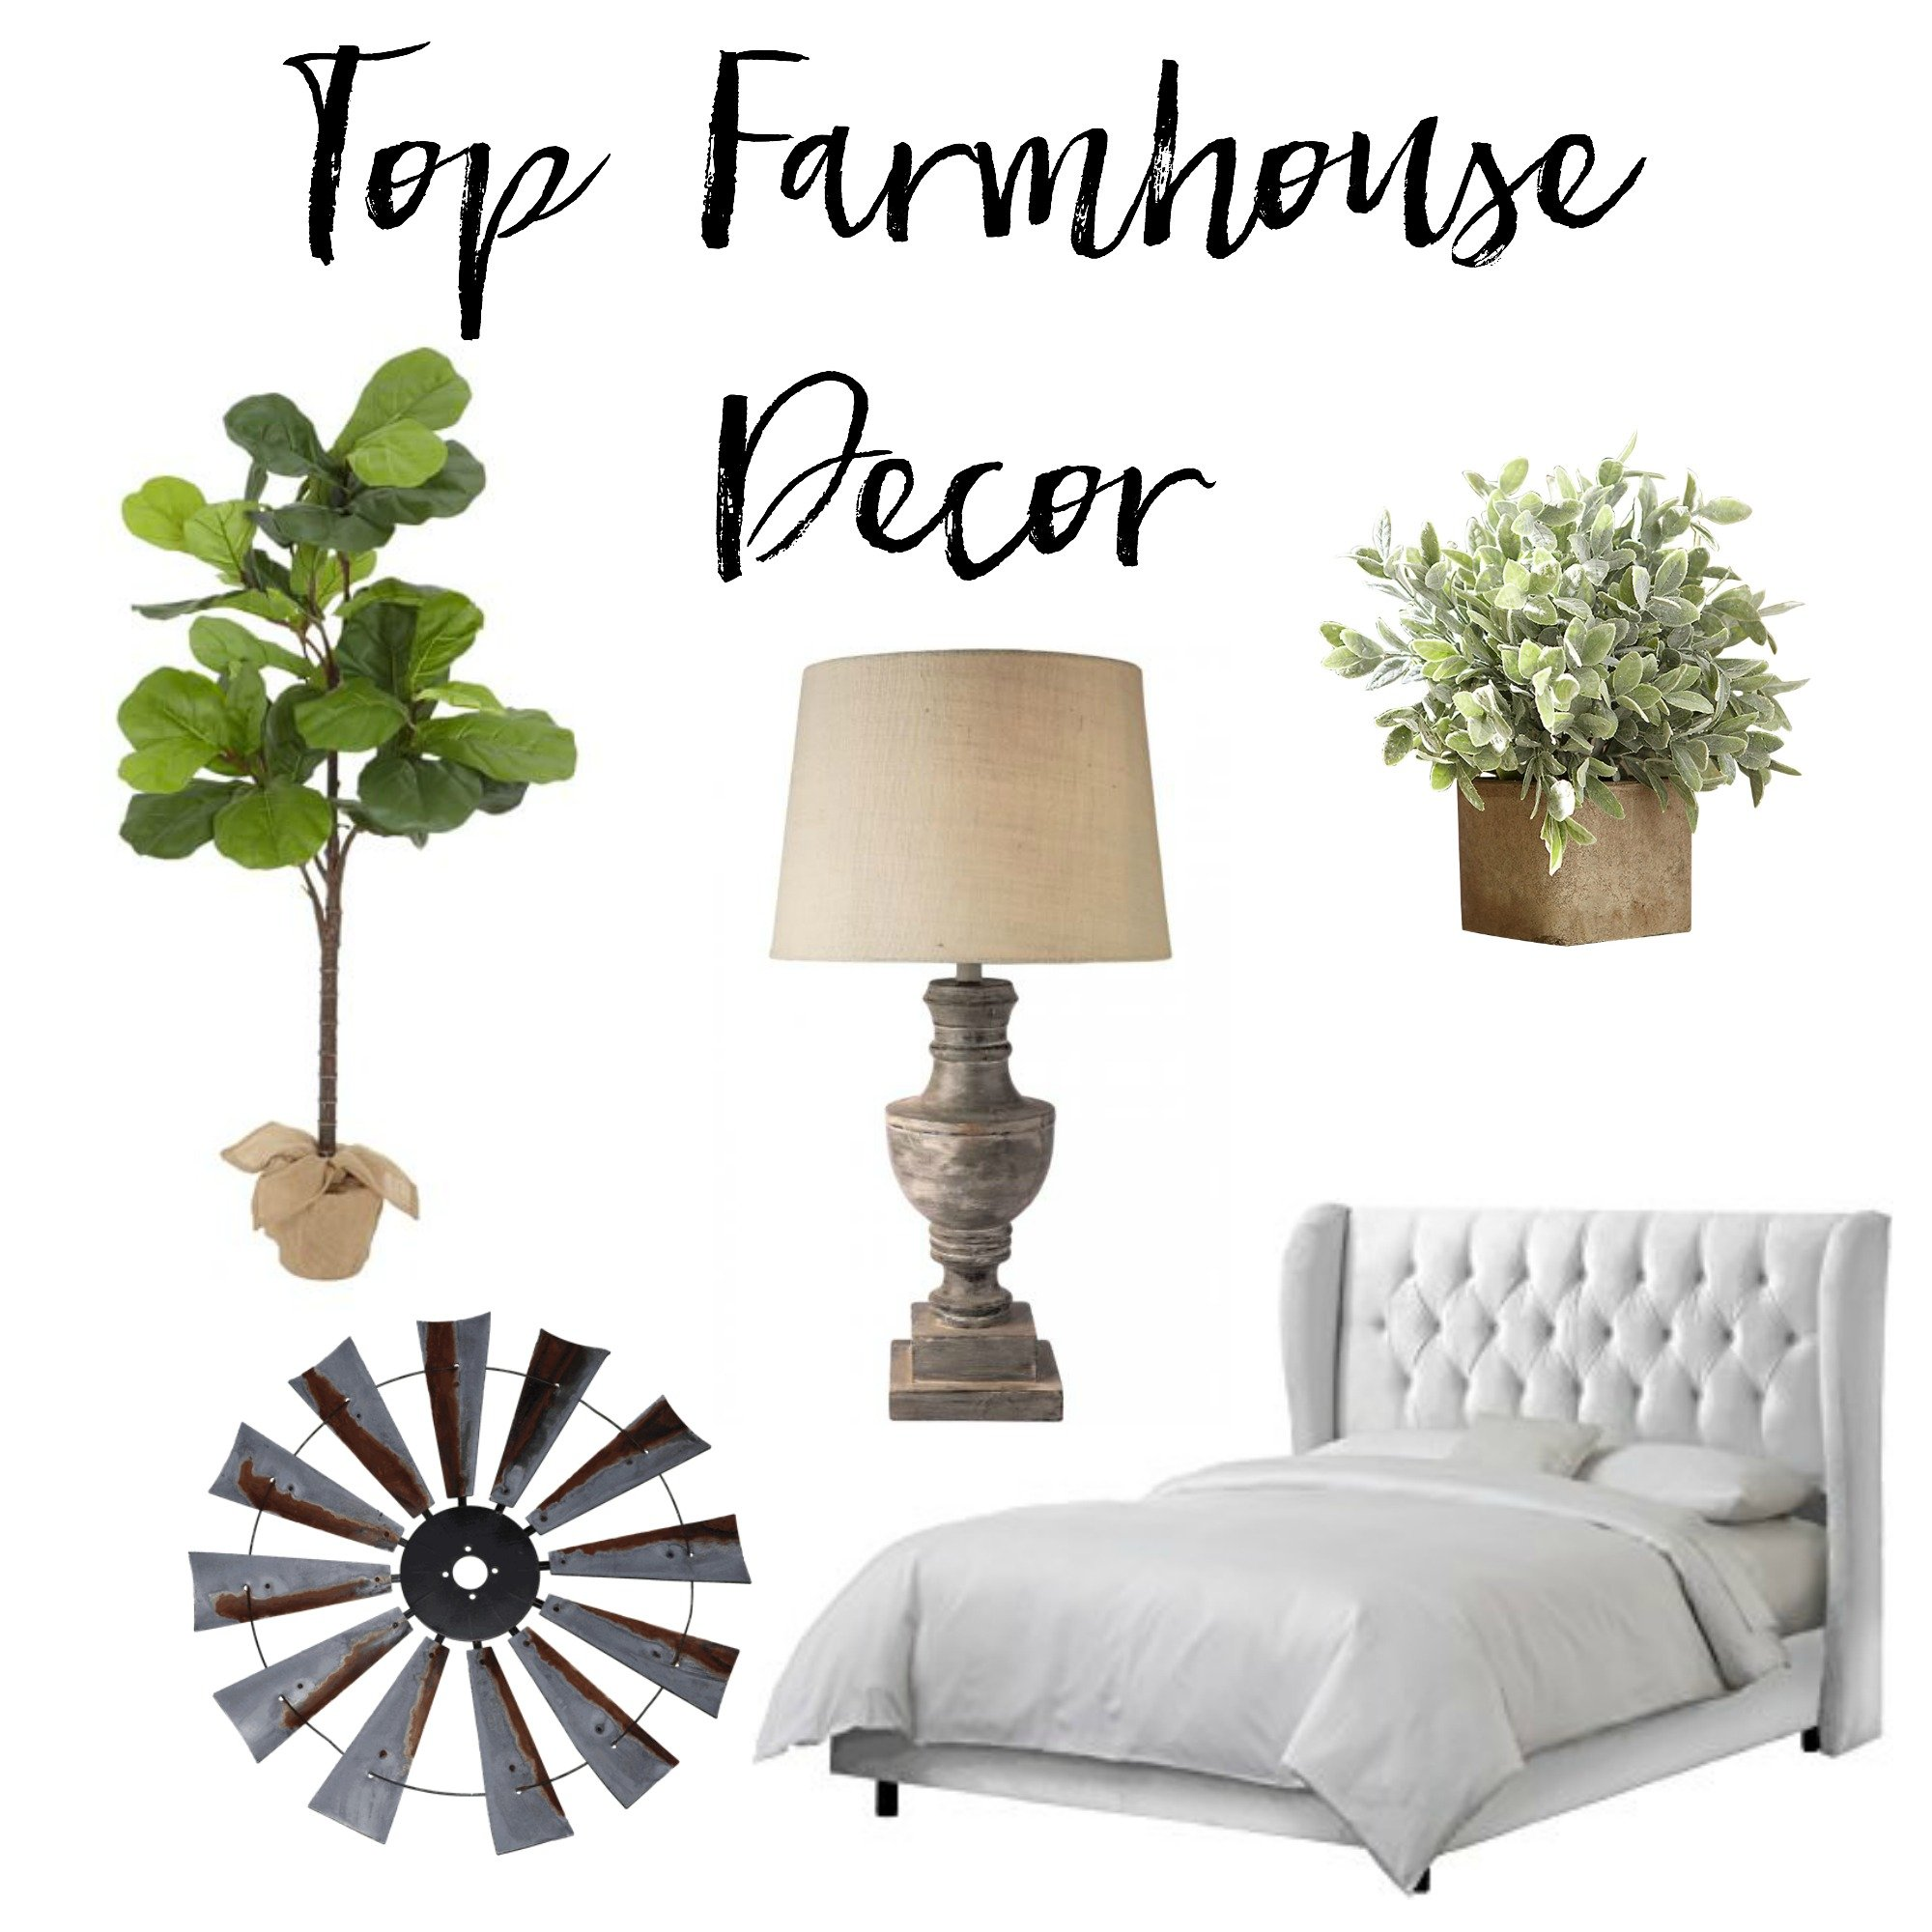 Top Farmhouse Decor from 2016. Pieces I wish I had bought in 2016 but I never did www.whitepicketfarmhouse.com